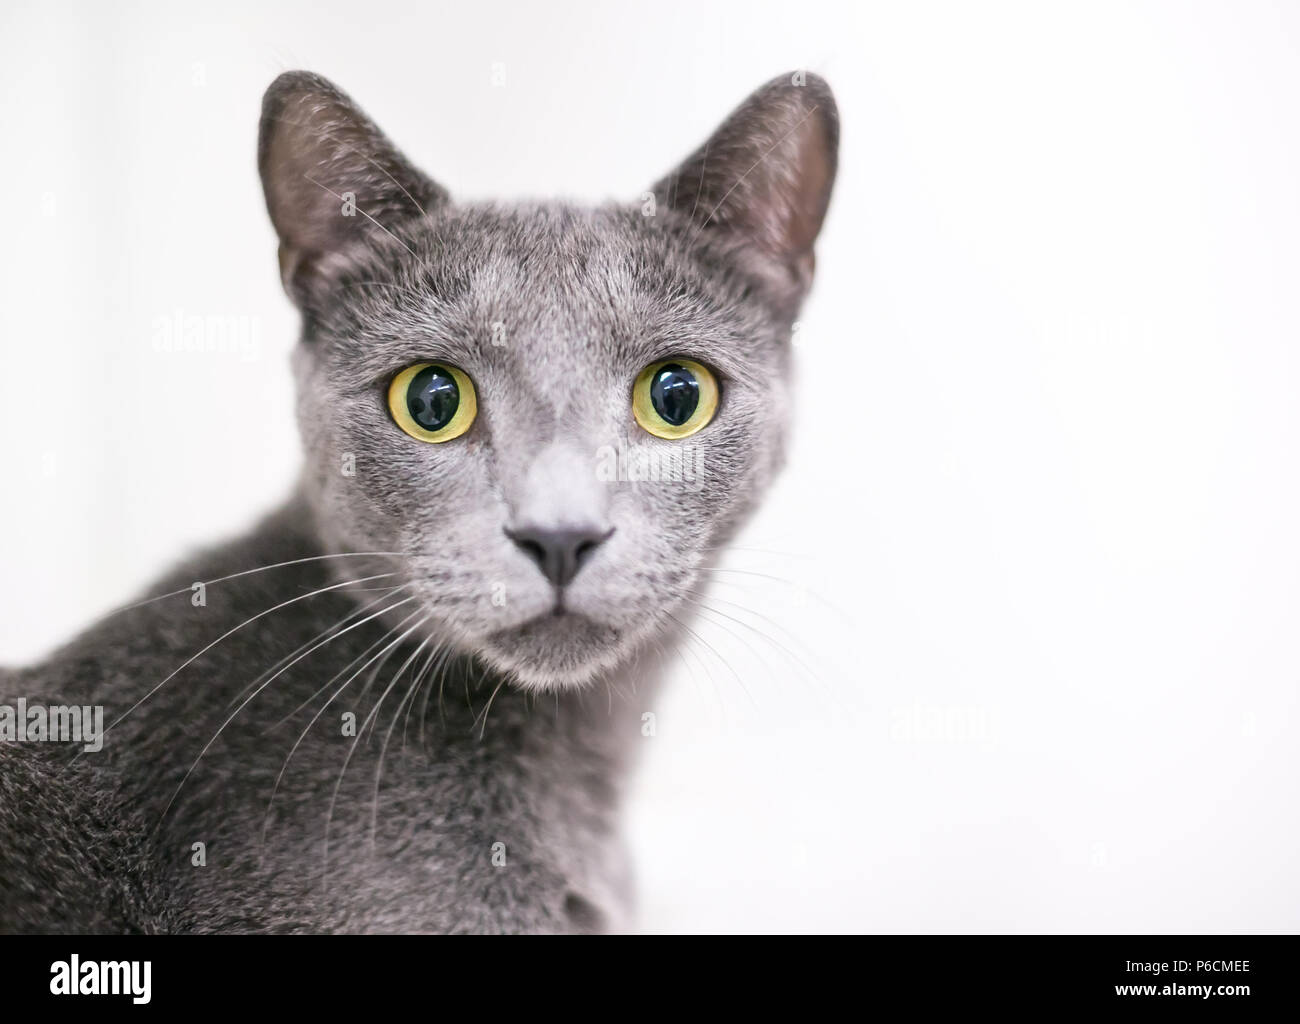 A wide-eyed gray domestic shorthair cat with large yellow eyes and dilated pupils - Stock Image